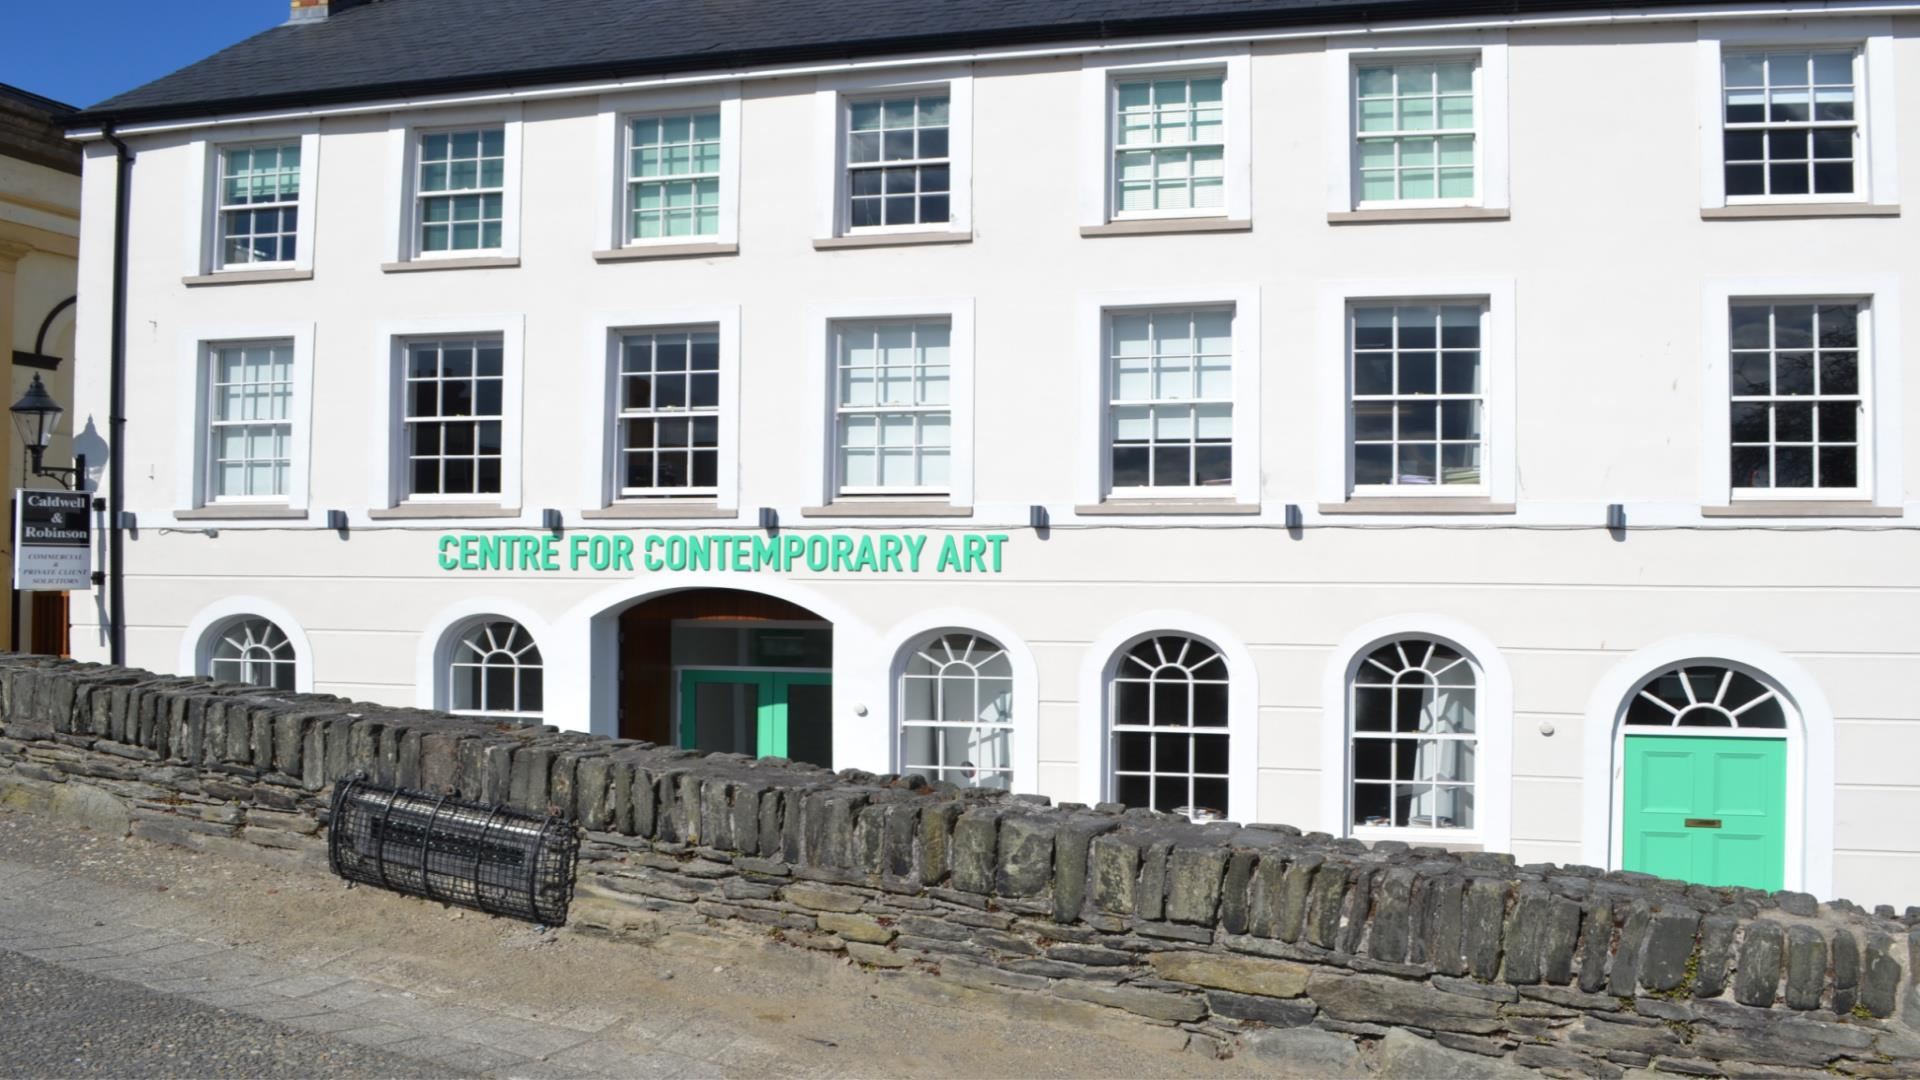 Centre for Contemporary Art Derry, Londonderry